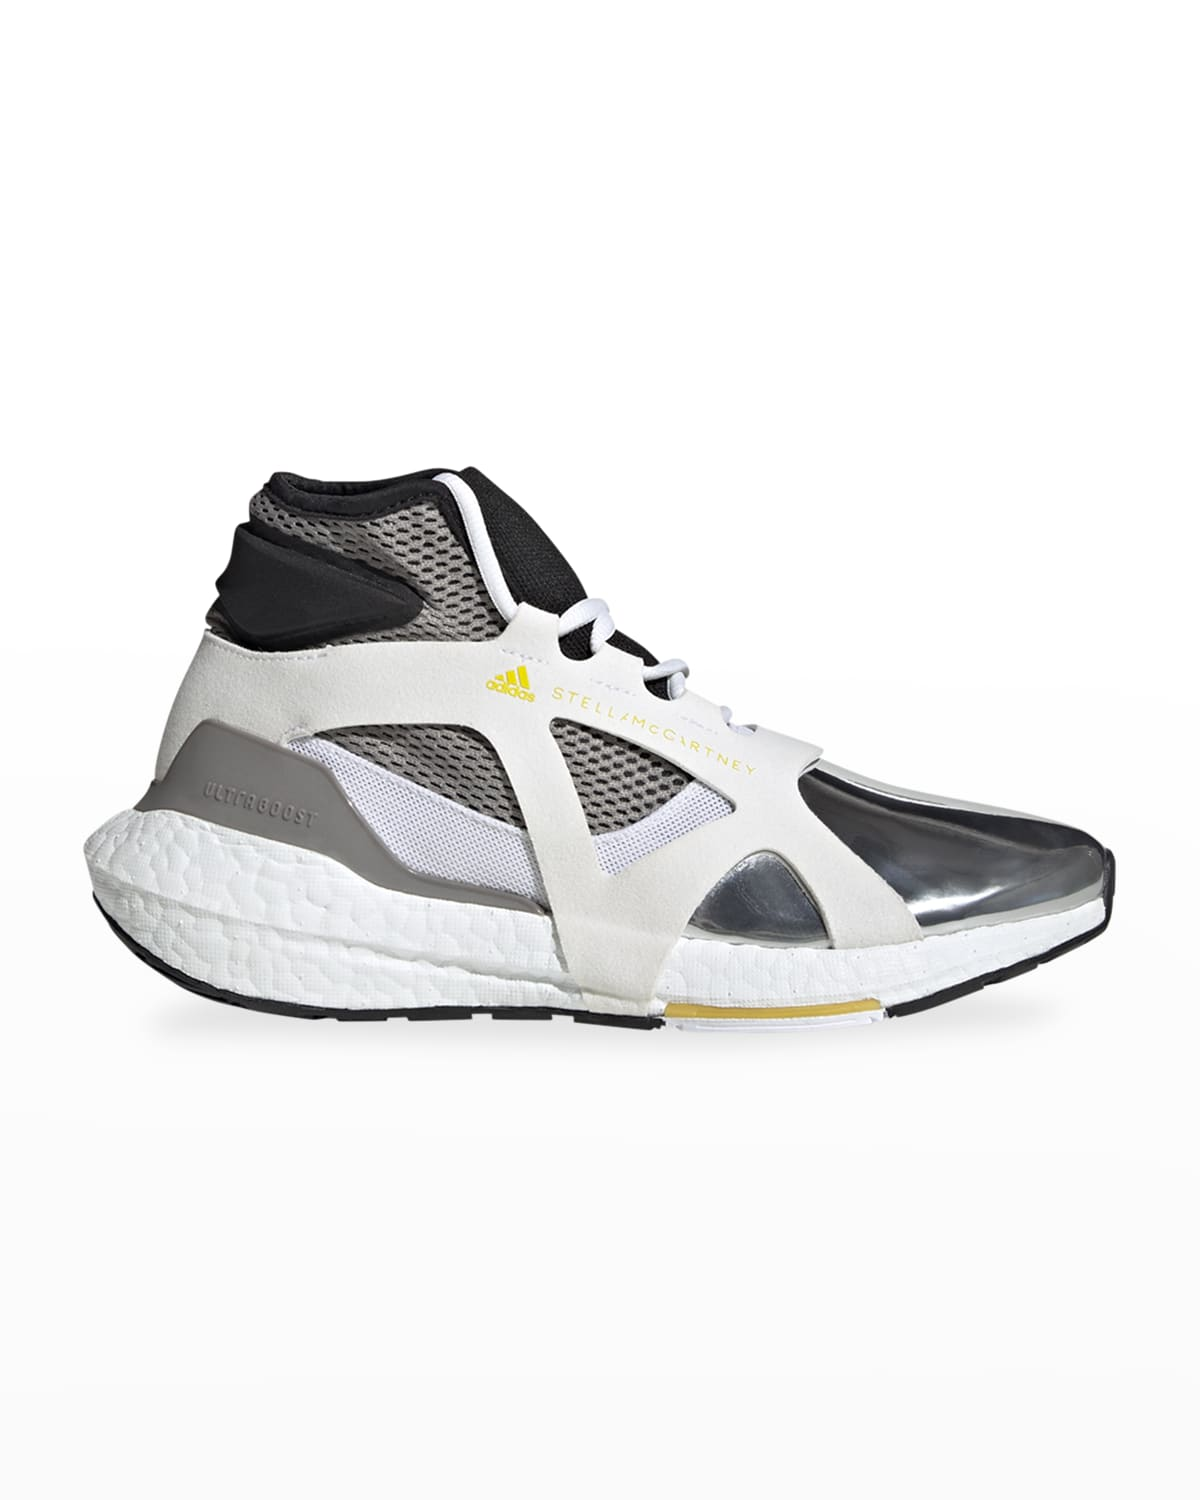 ASMC Ultraboost Recycled Trainer Sneakers